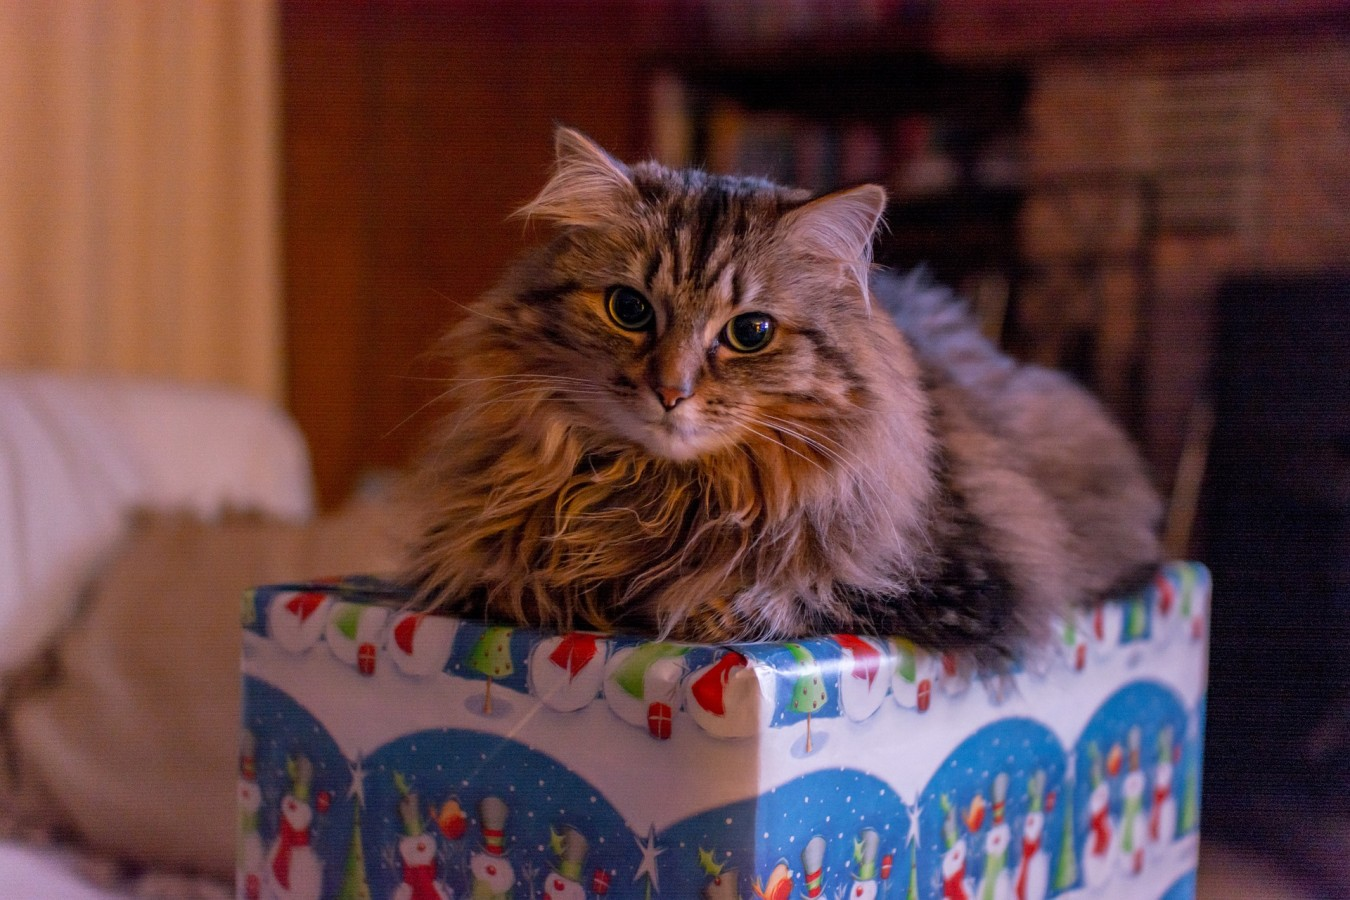 Avoid giving animals as presents